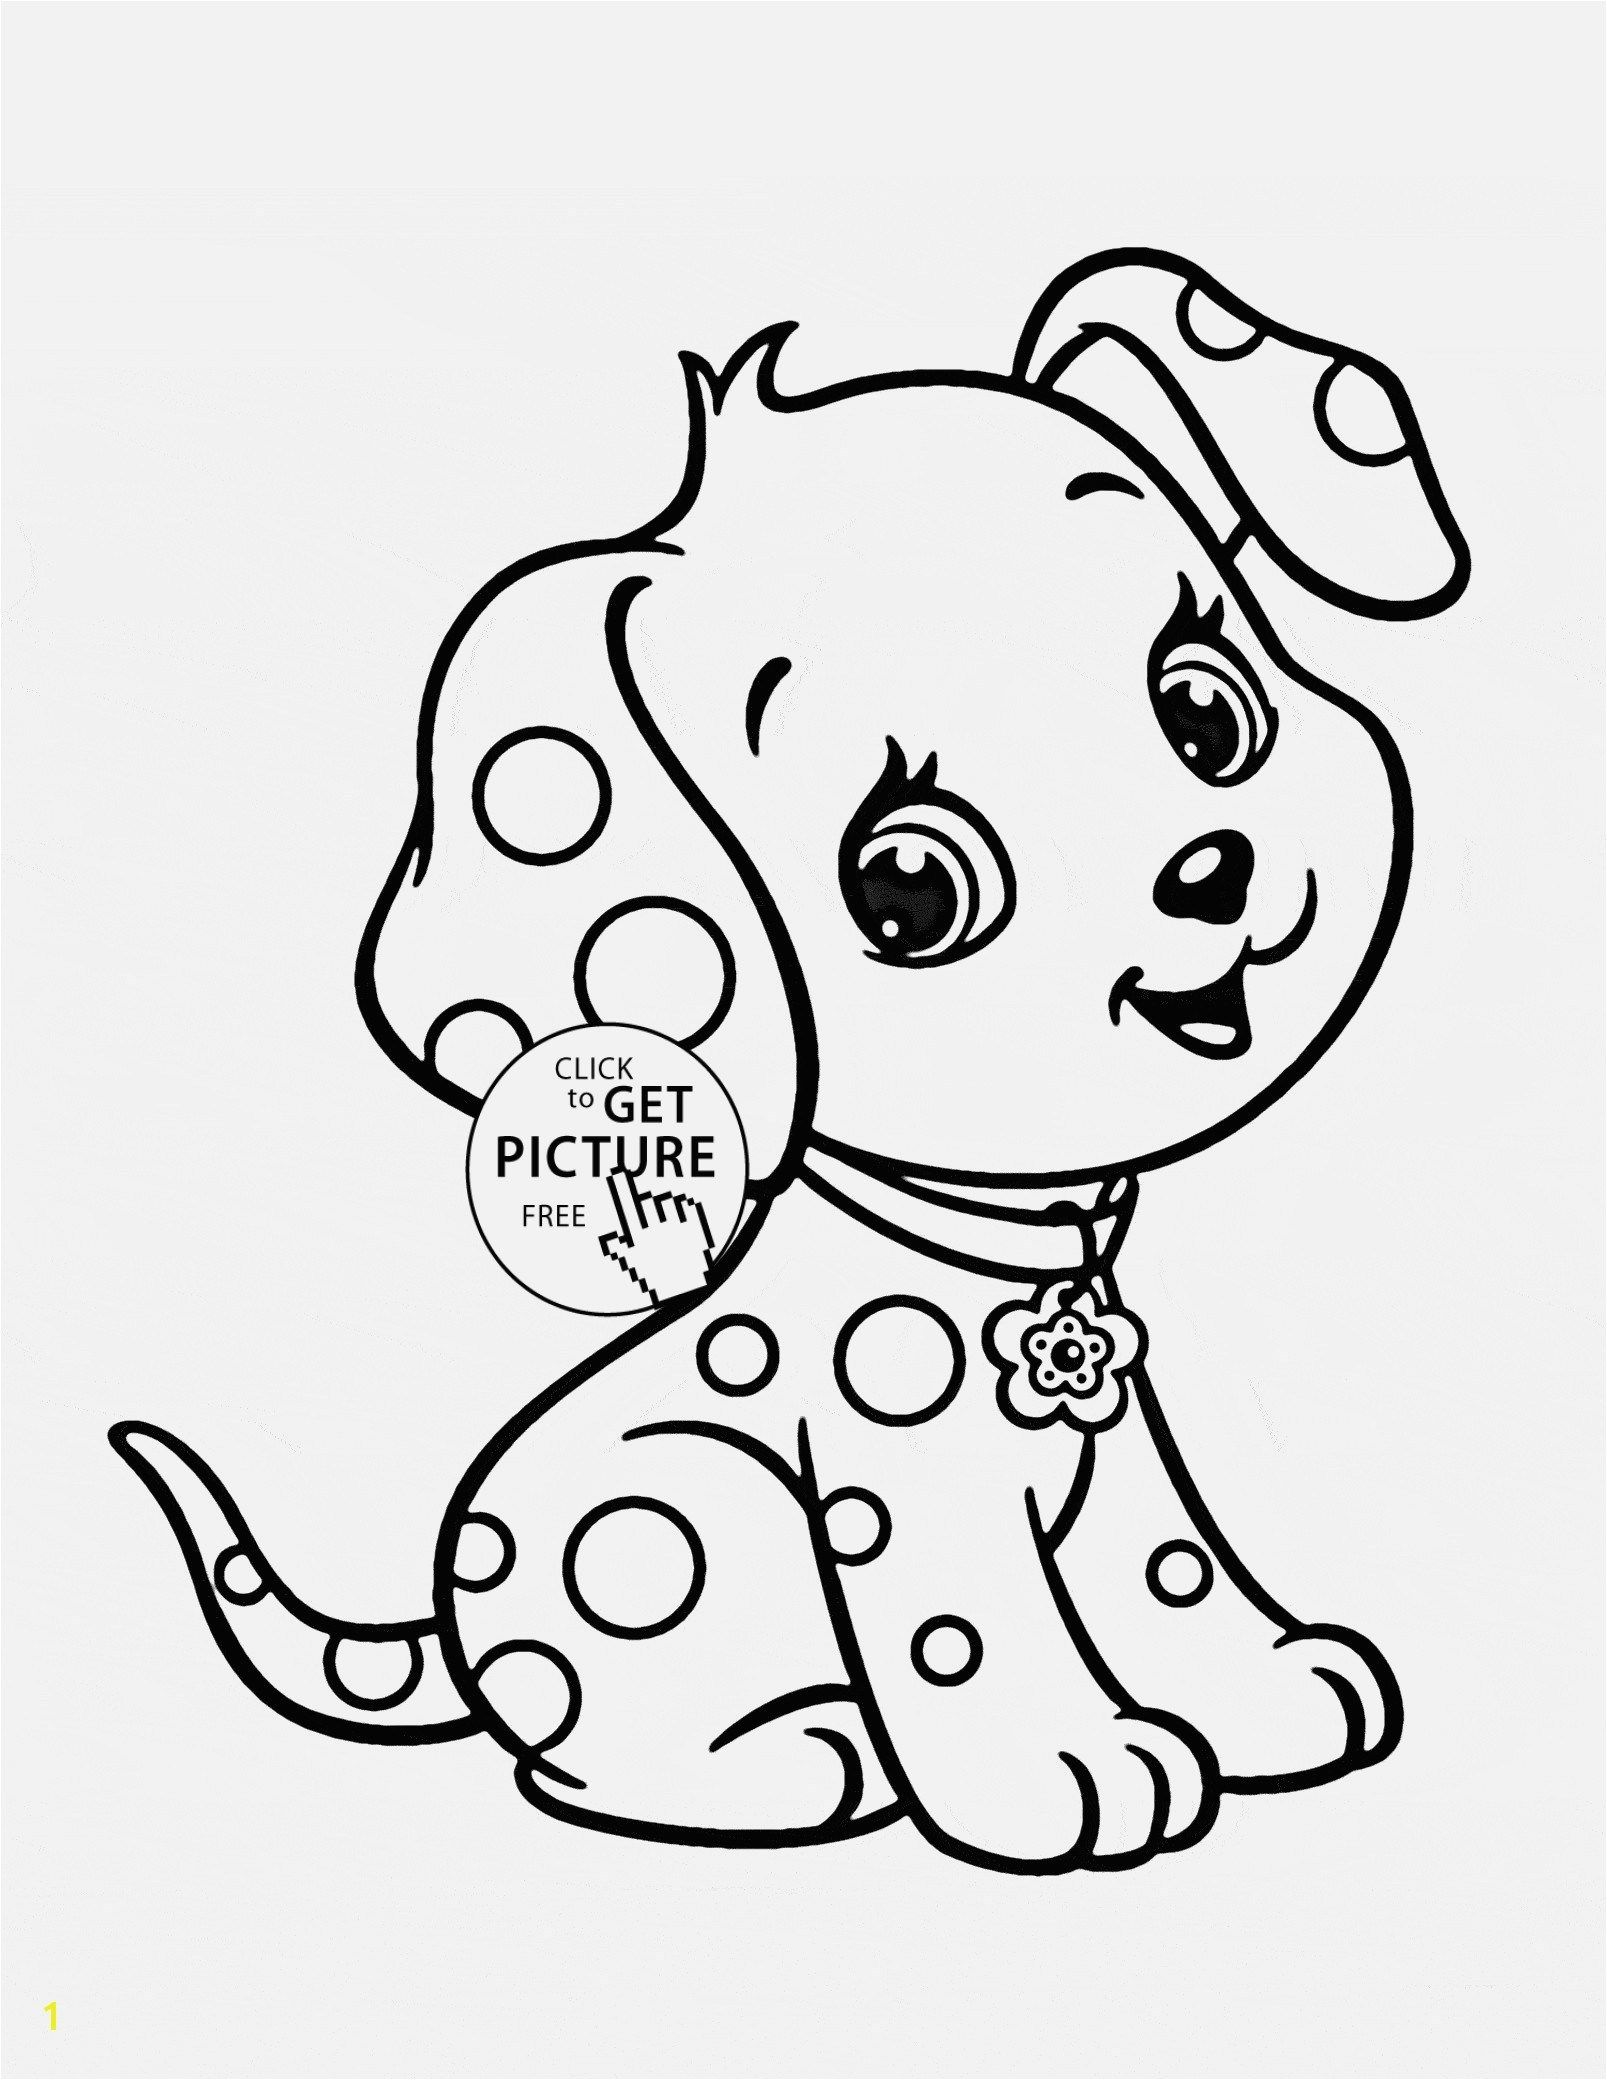 Printable Animal Coloring Pages Free Printable Animal Coloring Pages For Kindergarten Coloring Pages Puppy Coloring Pages Animal Coloring Pages Dog Coloring Page